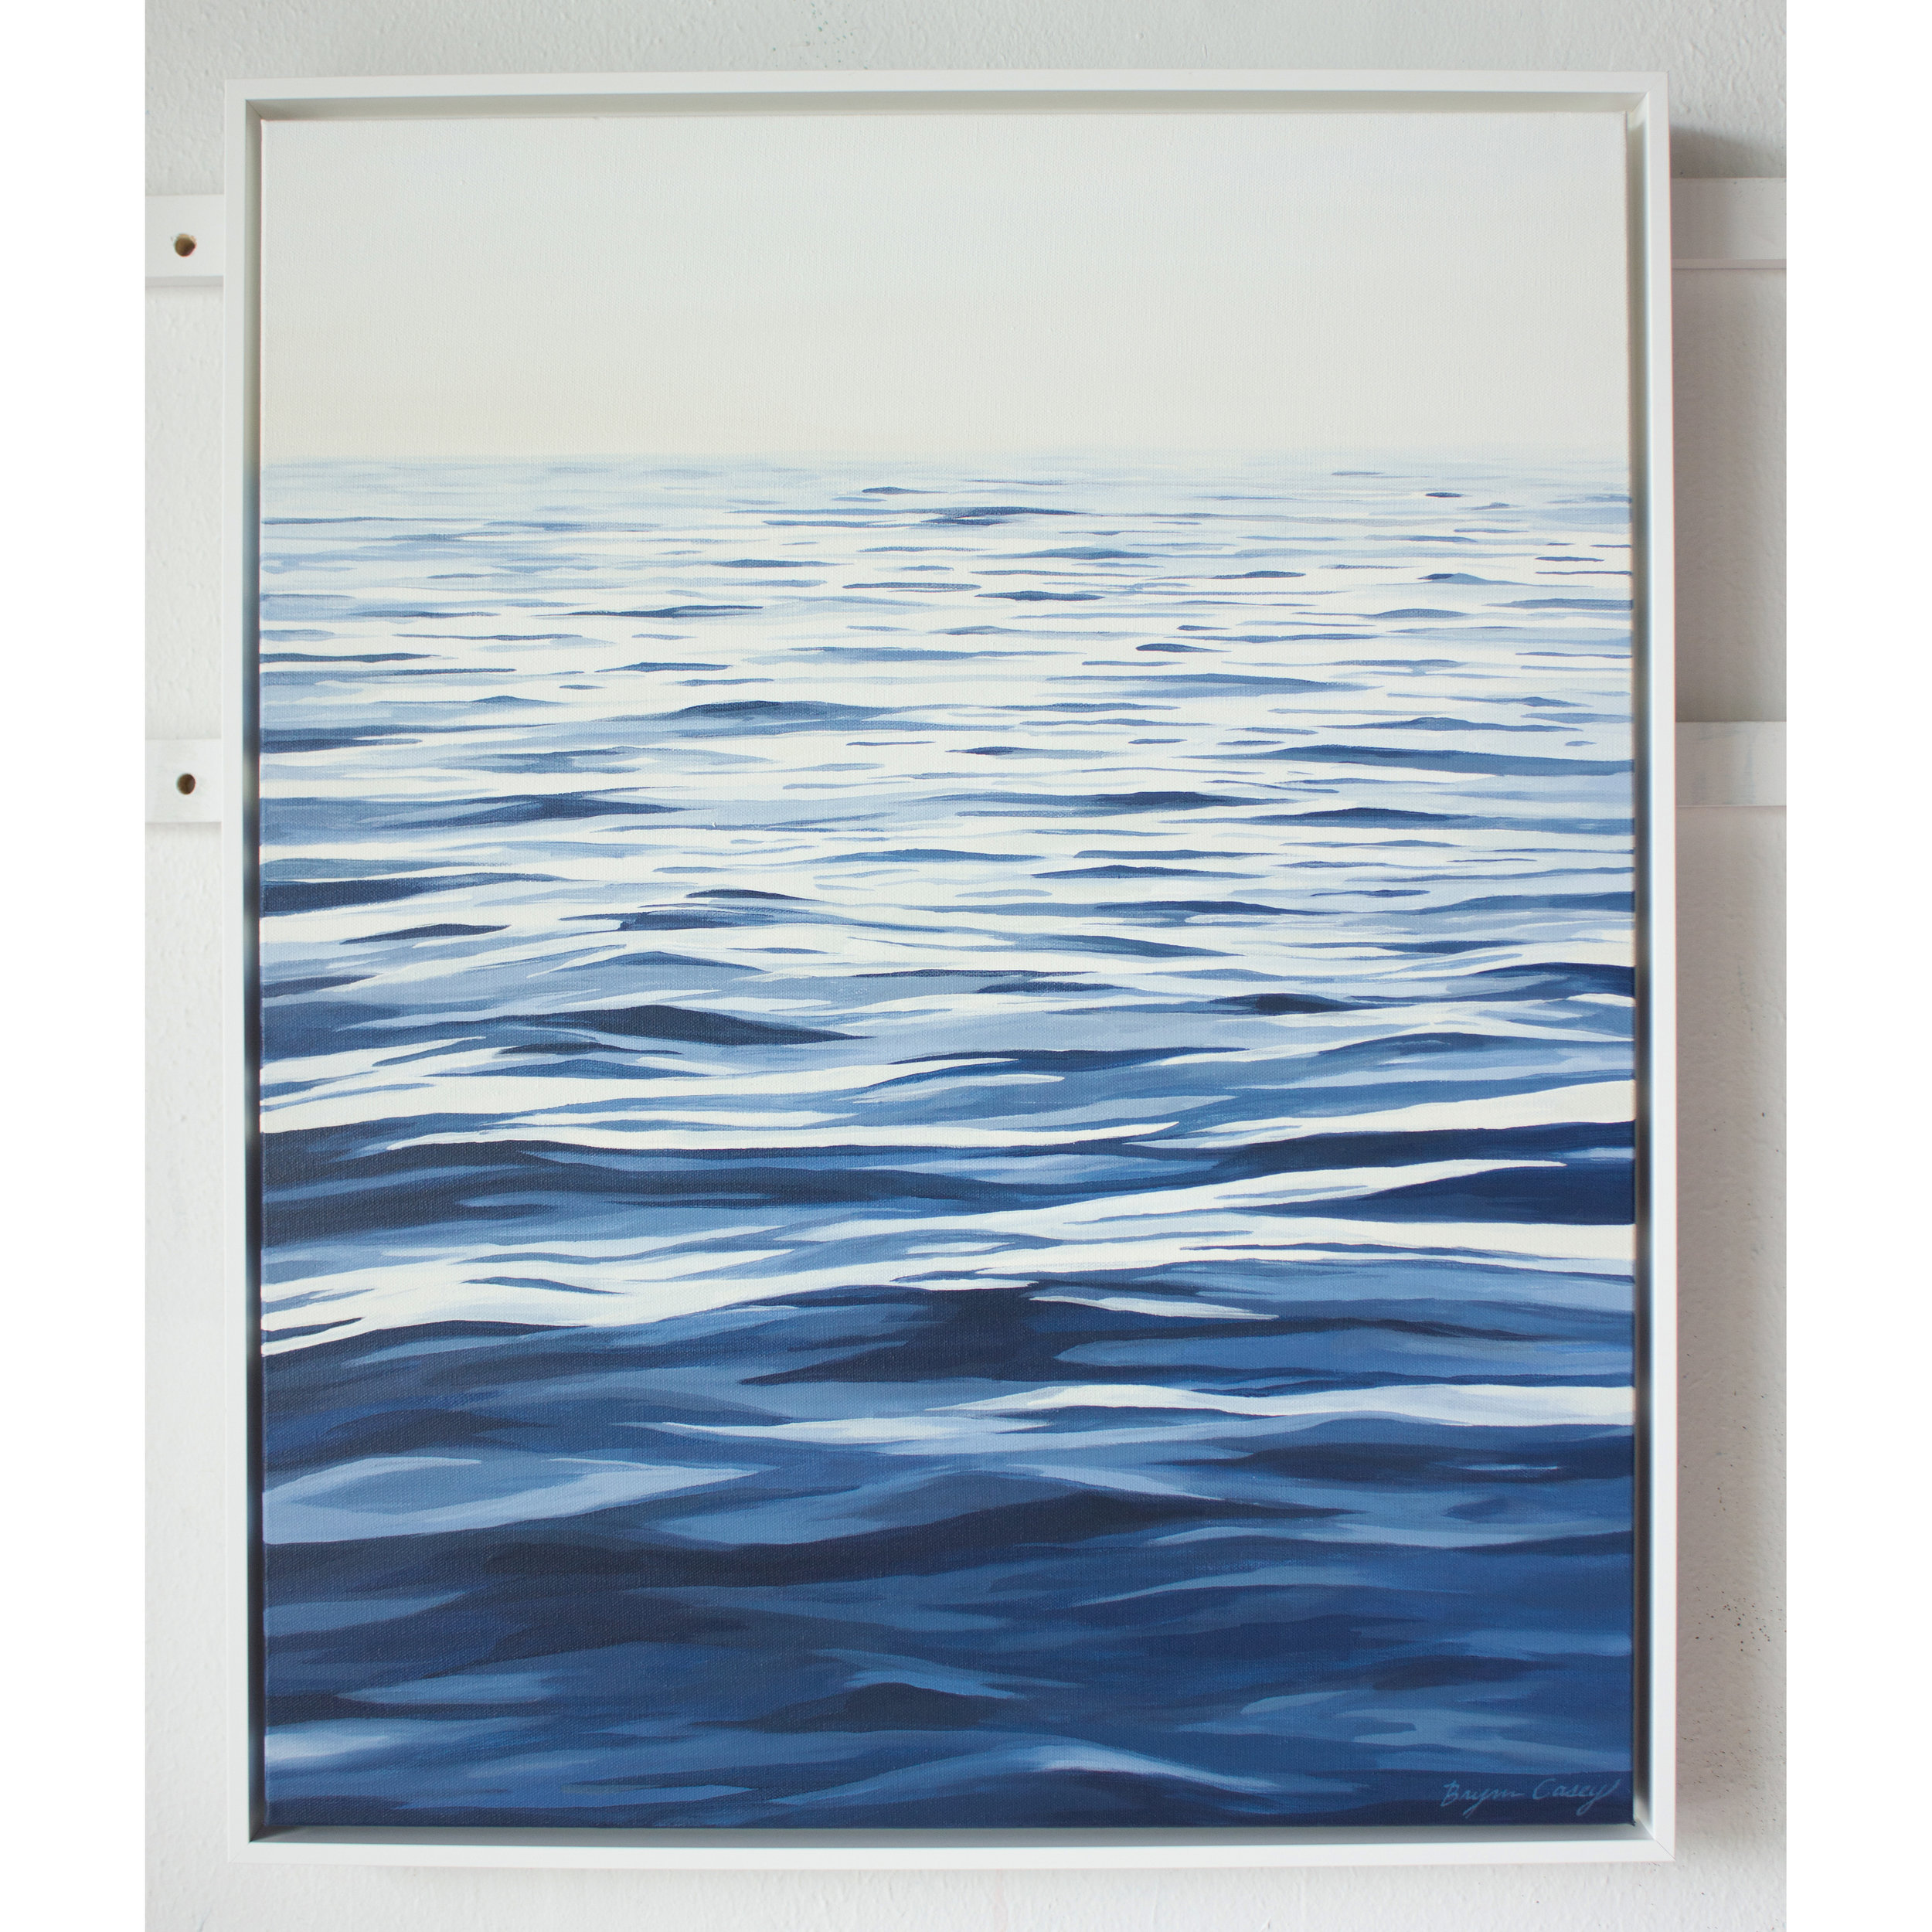 Calm Waters #2 24x30 whihte.jpg